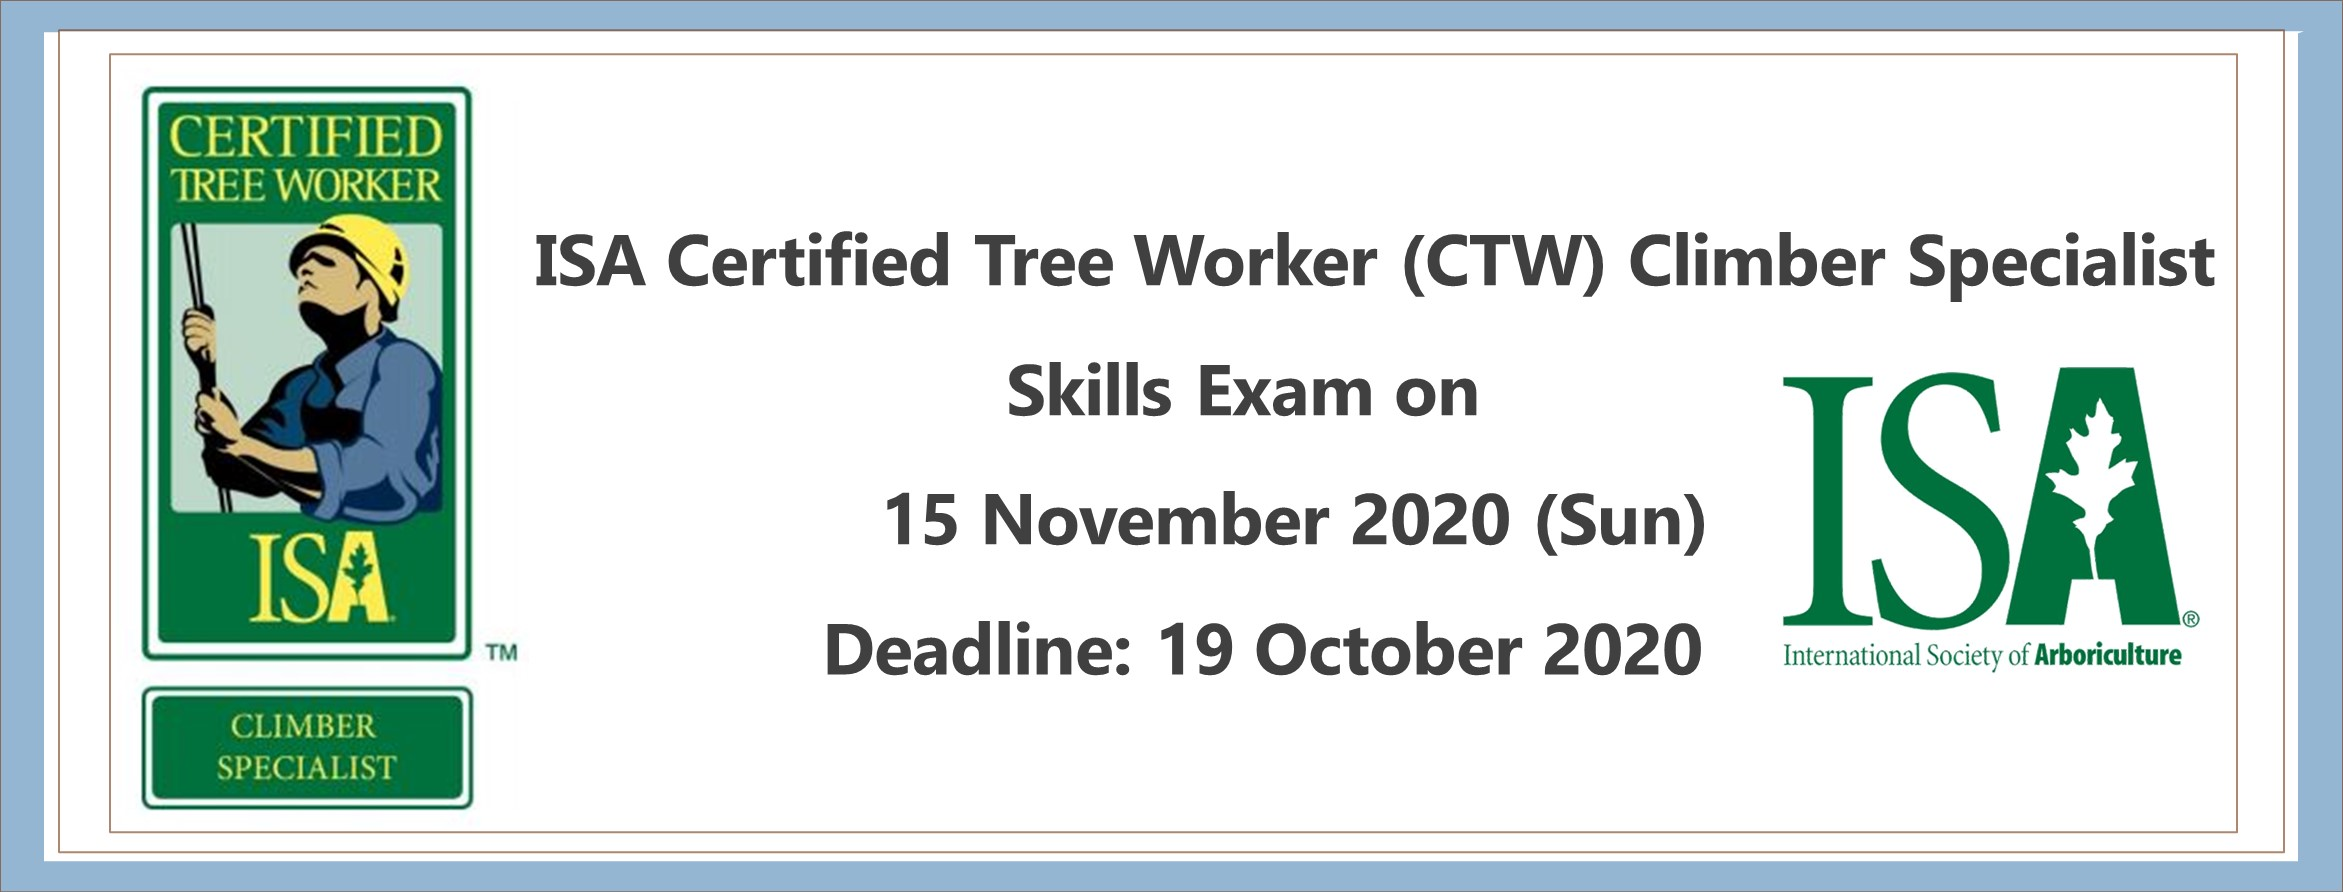 ISA Certified Tree Work Climber Specialist Skills Exam